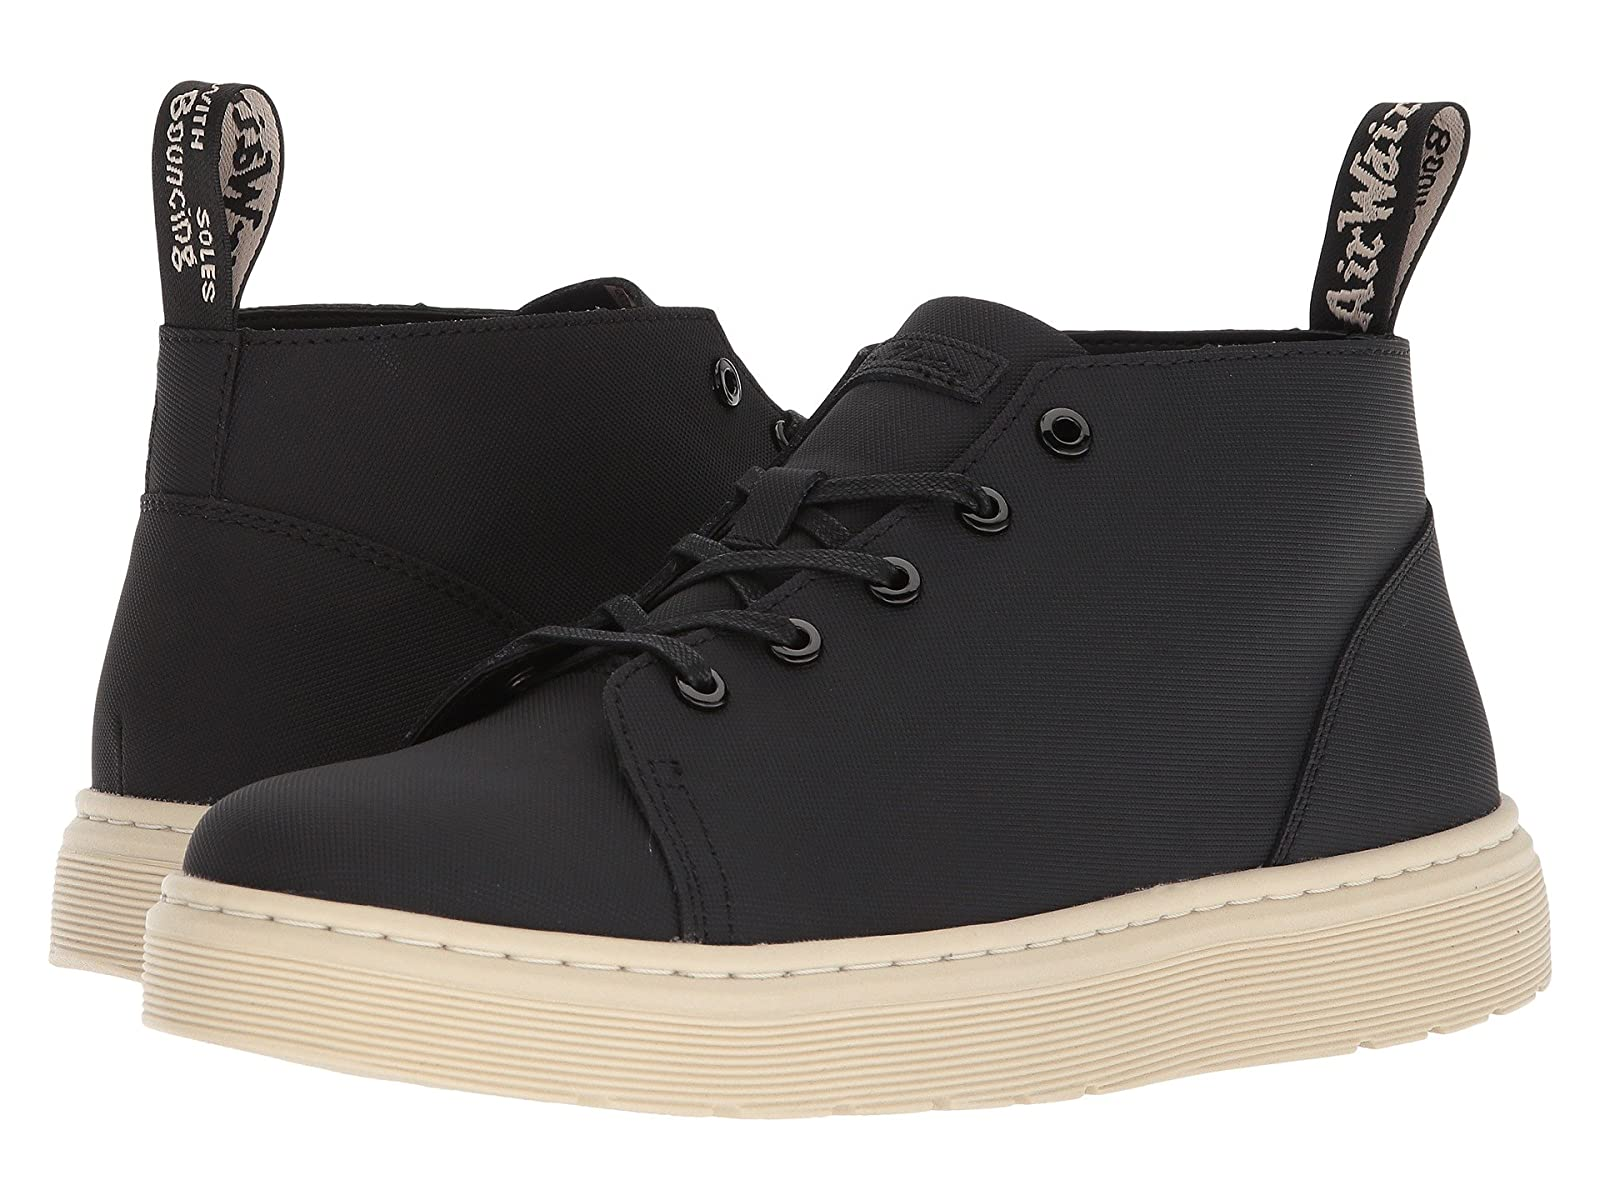 Dr. Martens Baynes 6-Eye Chukka BootCheap and distinctive eye-catching shoes